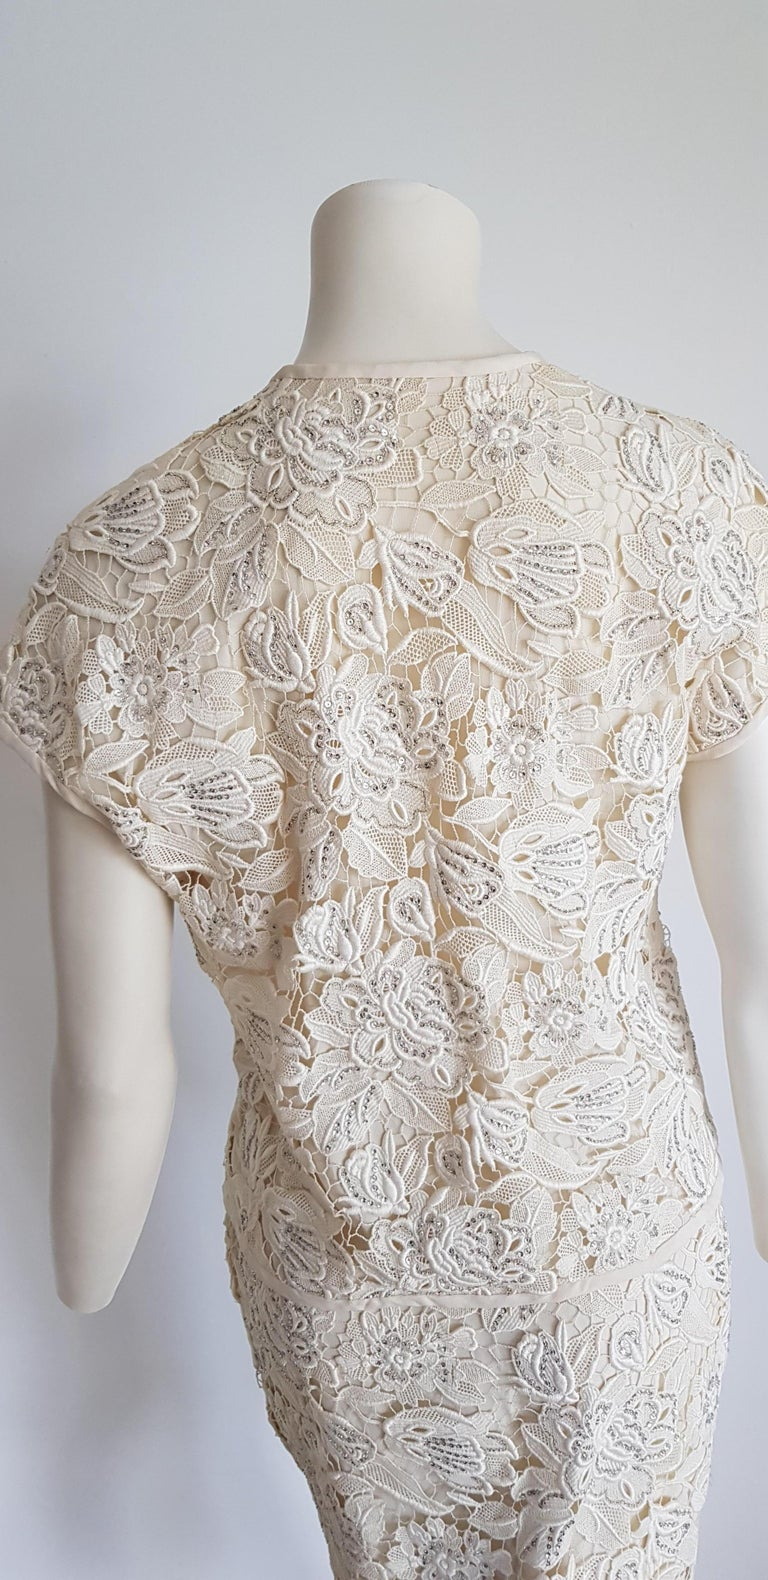 VALENTINO Haute Couture Swarovski Diamonds Embroidered Lace Beige Suit - Unworn For Sale 7